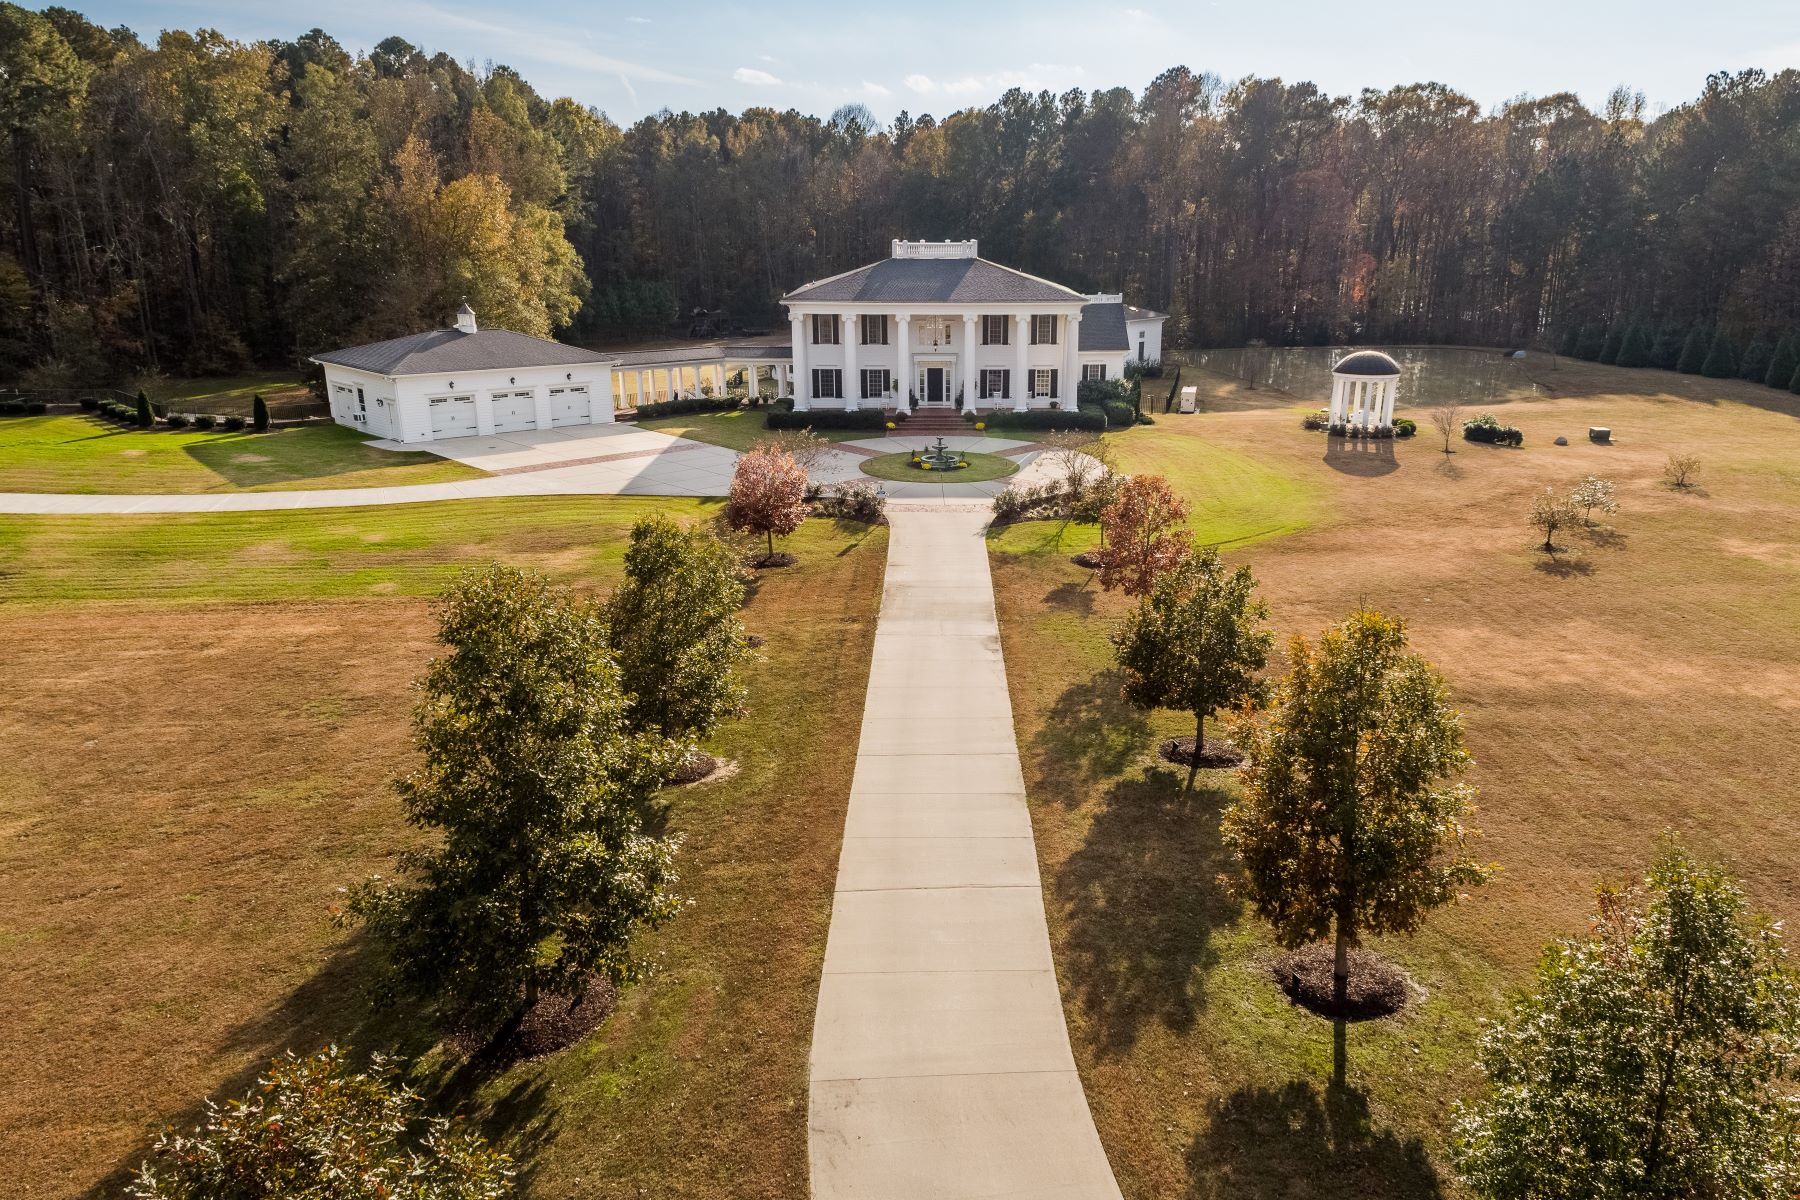 Single Family Home for Active at Quintessential Tennis Estate 3406 & 3326 Stagecoach Road Durham, North Carolina 27713 United States